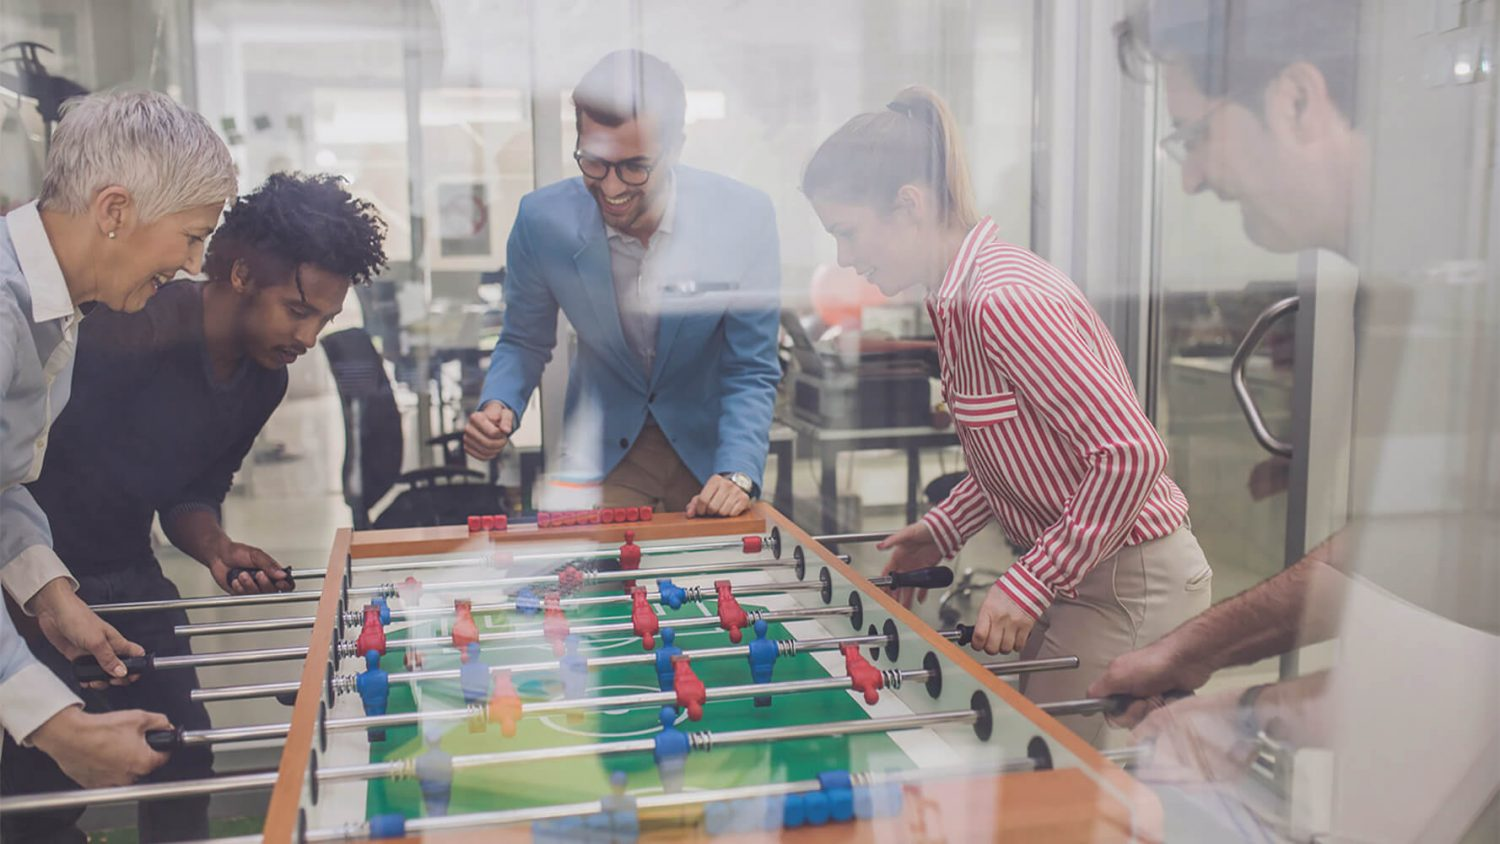 Motivating Workplace Culture